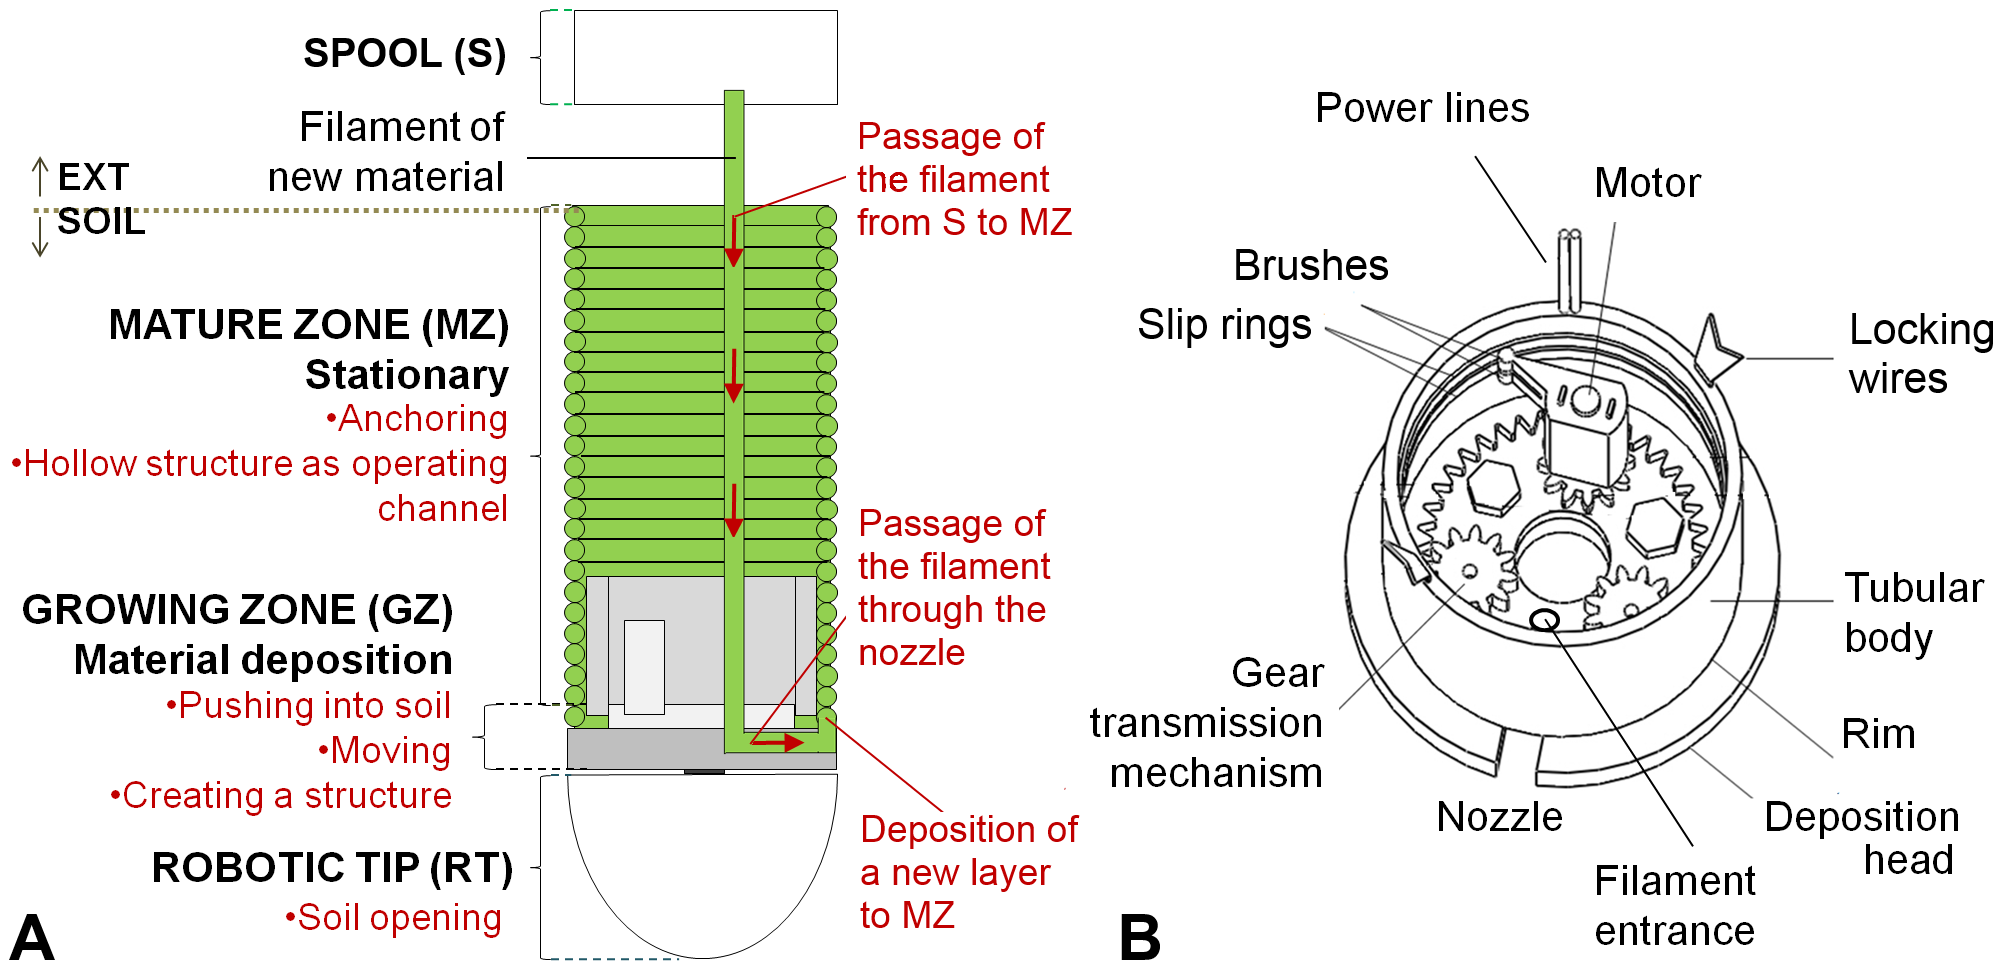 Design of root-like soil penetration device from Figure 3 of Sadeghi A. et al. PLoS ONE 9(2): e90139.